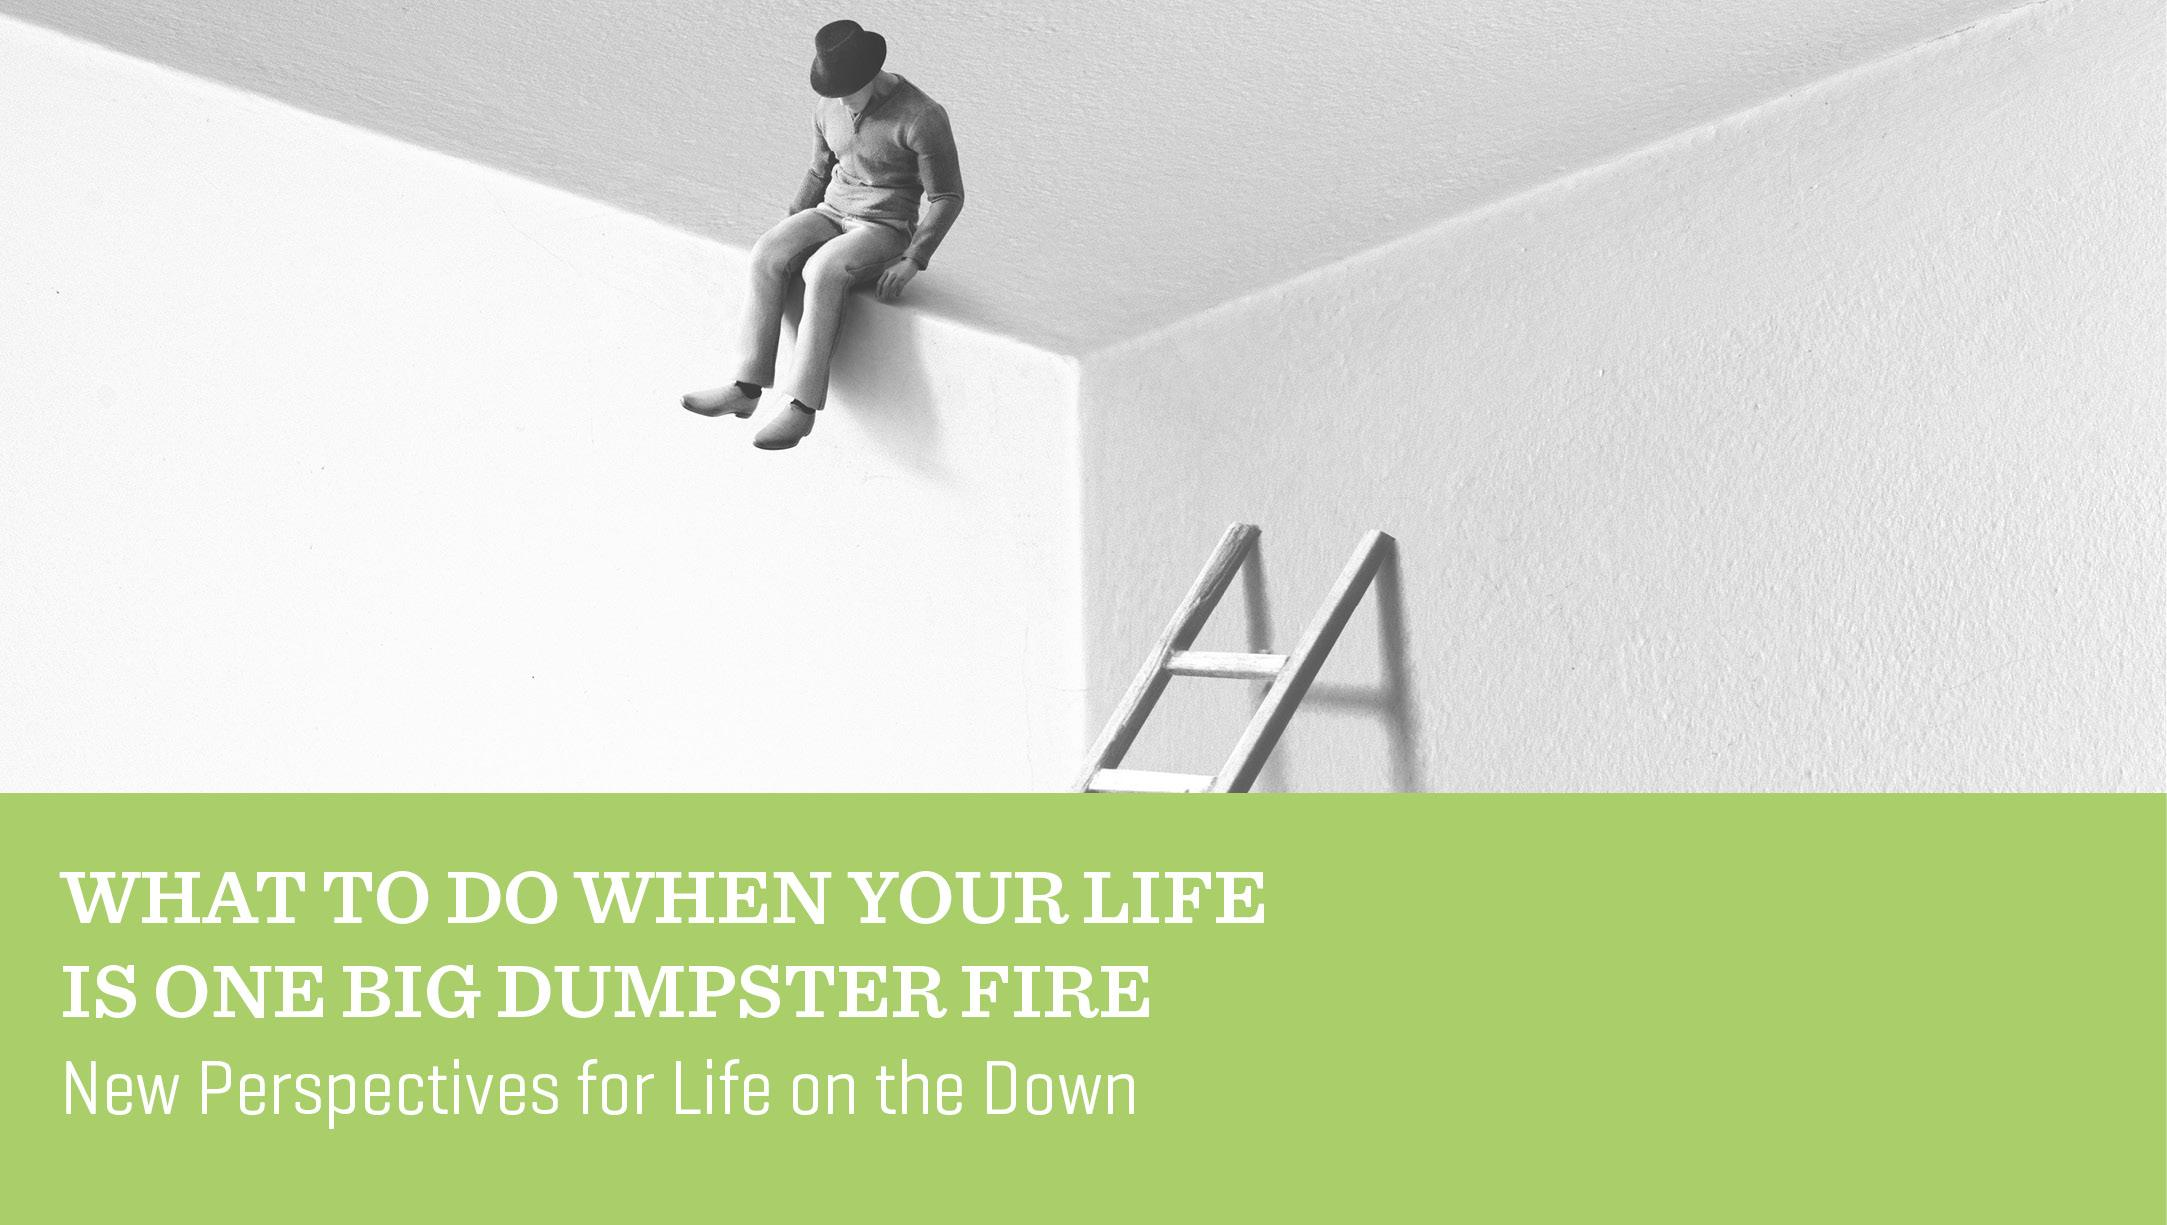 What to Do When Your Life Is One Big Dumpster Fire